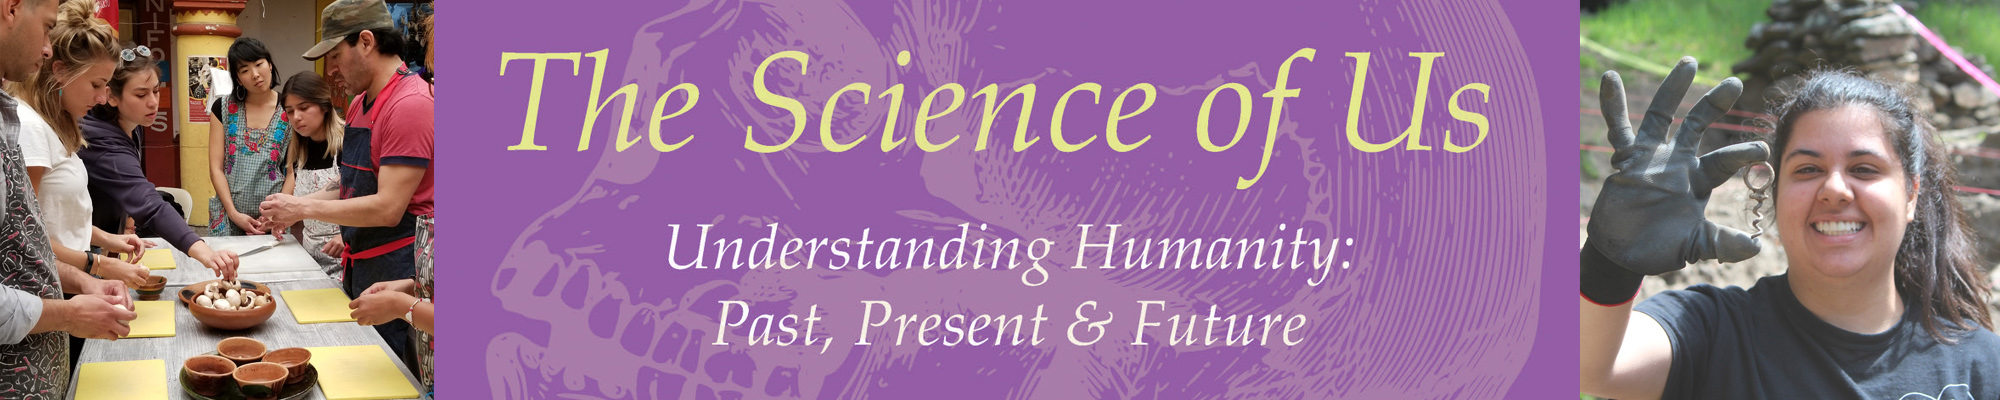 The science of us, understanding humanity: past, present and future